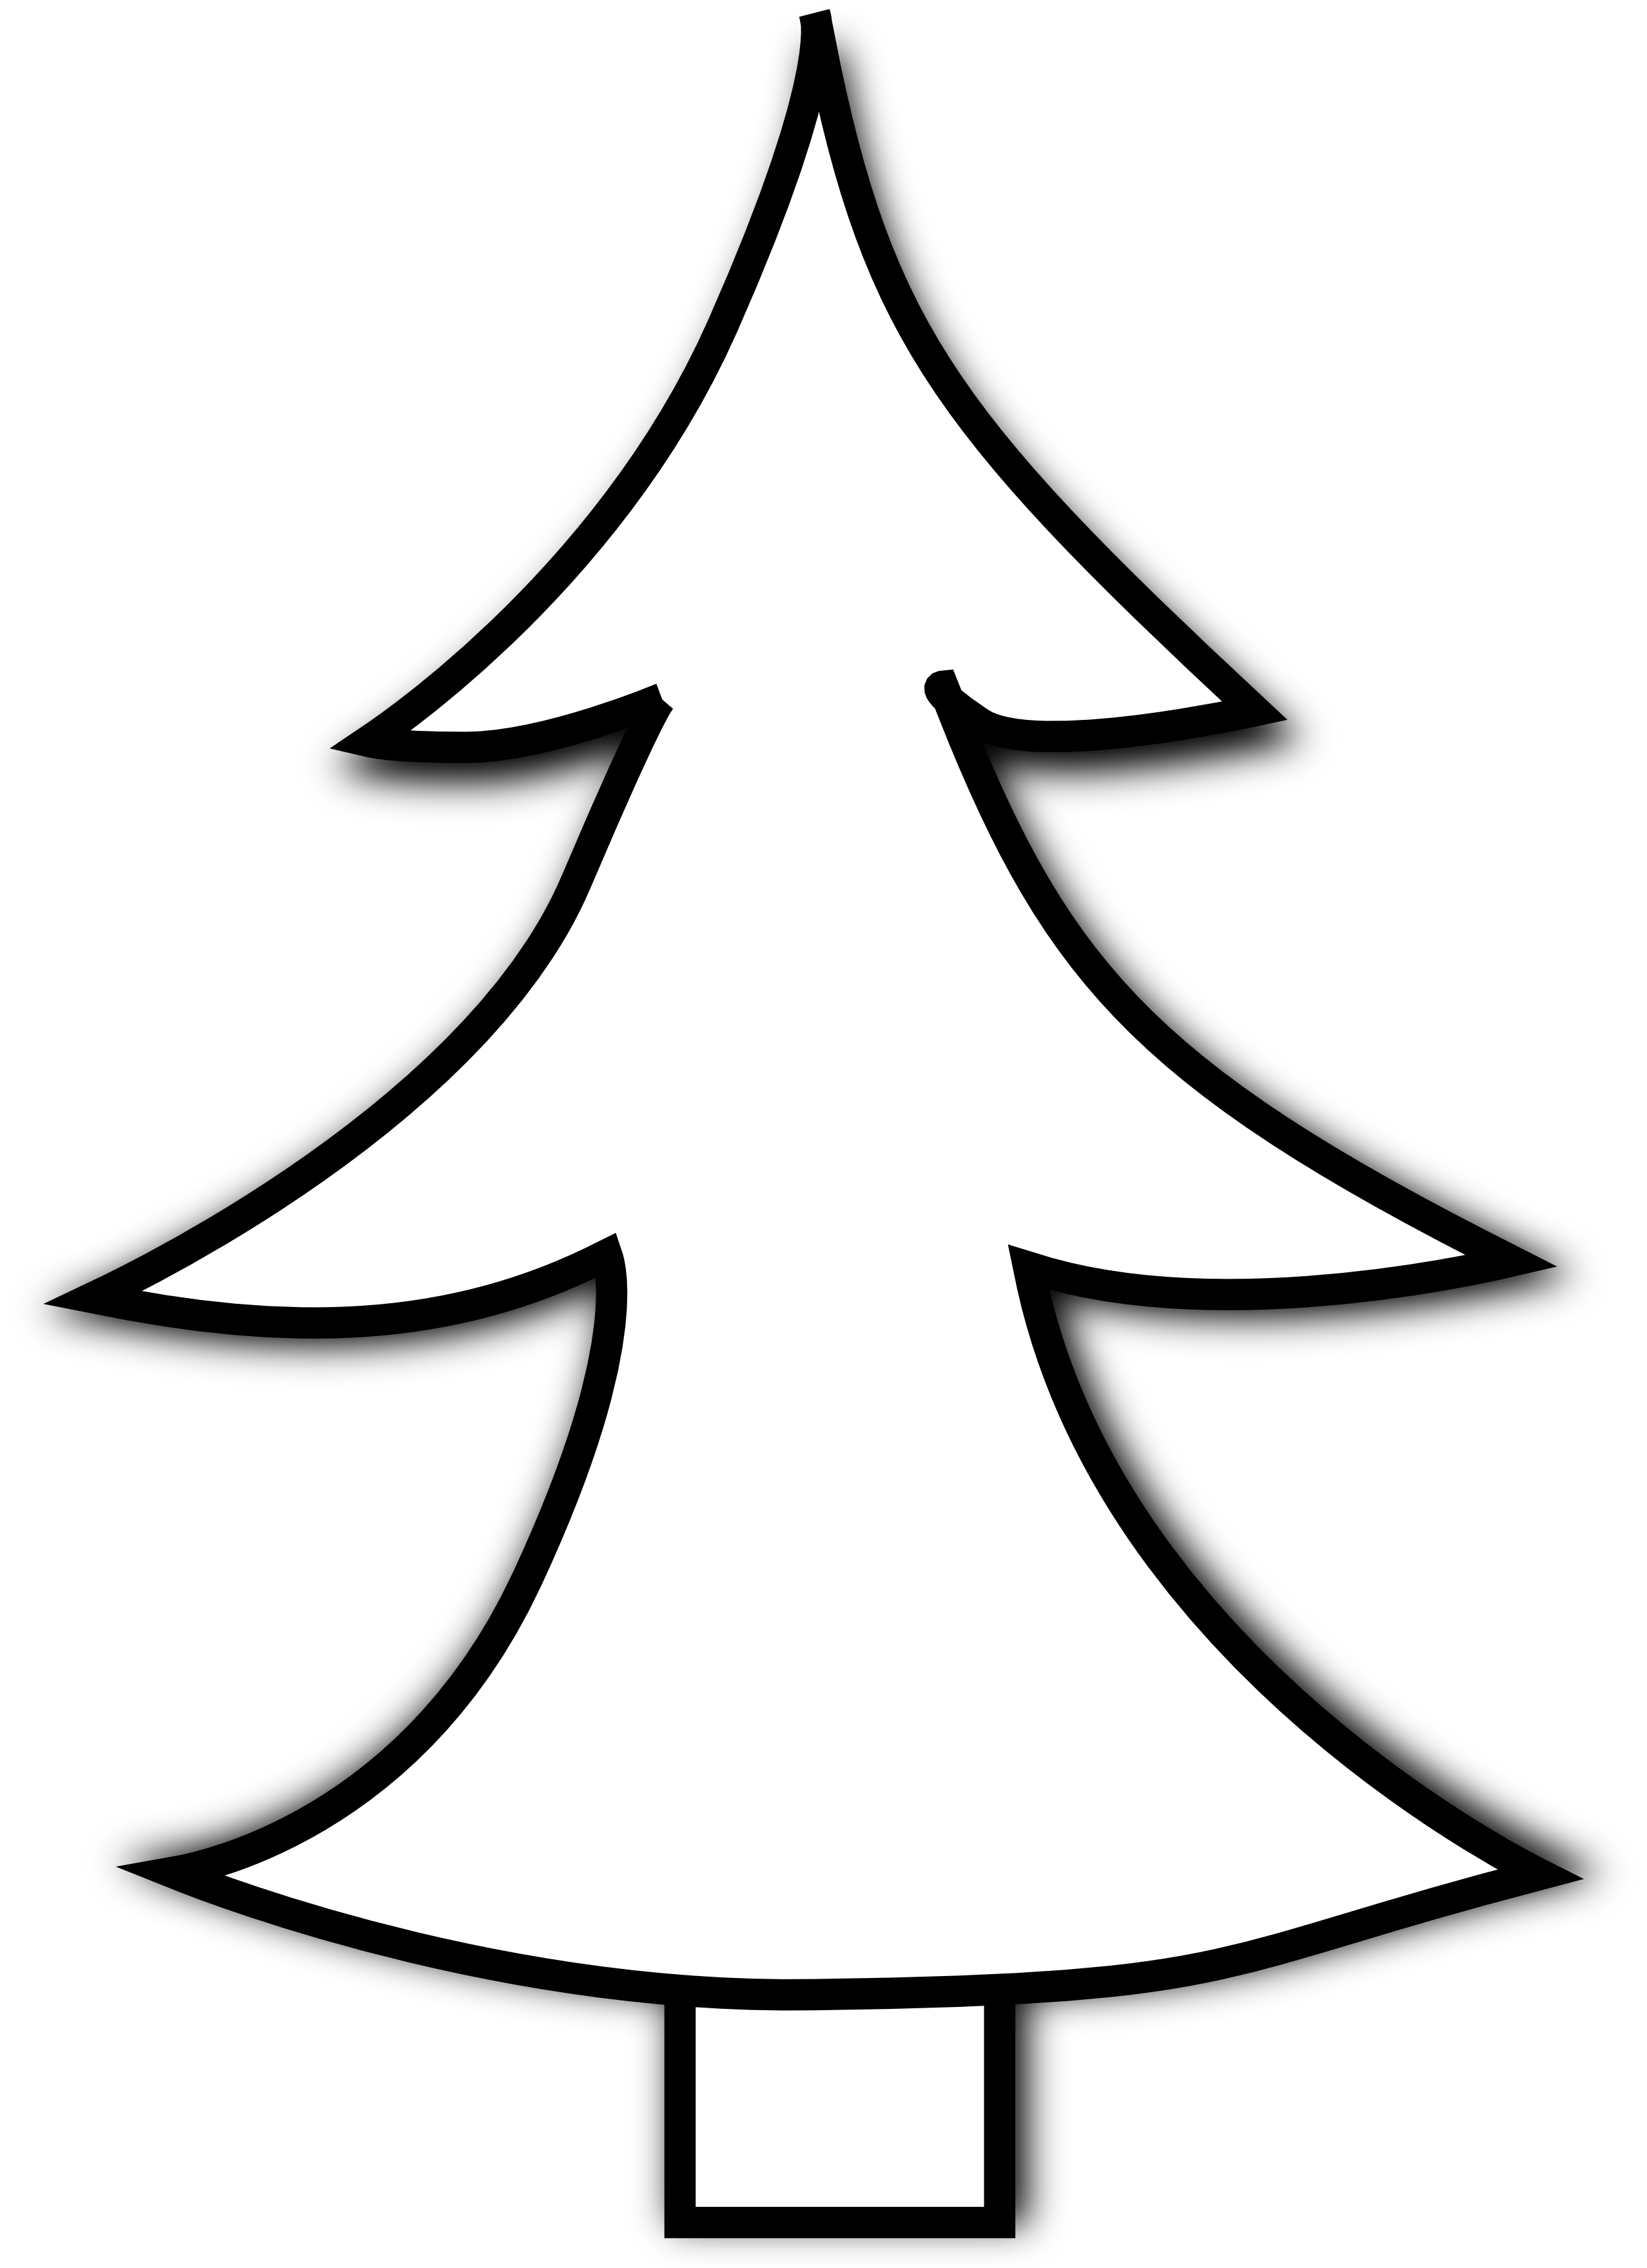 christmas tree clipart black and white clipart panda free rh clipartpanda com christmas tree clipart black and white xmas tree clipart black and white